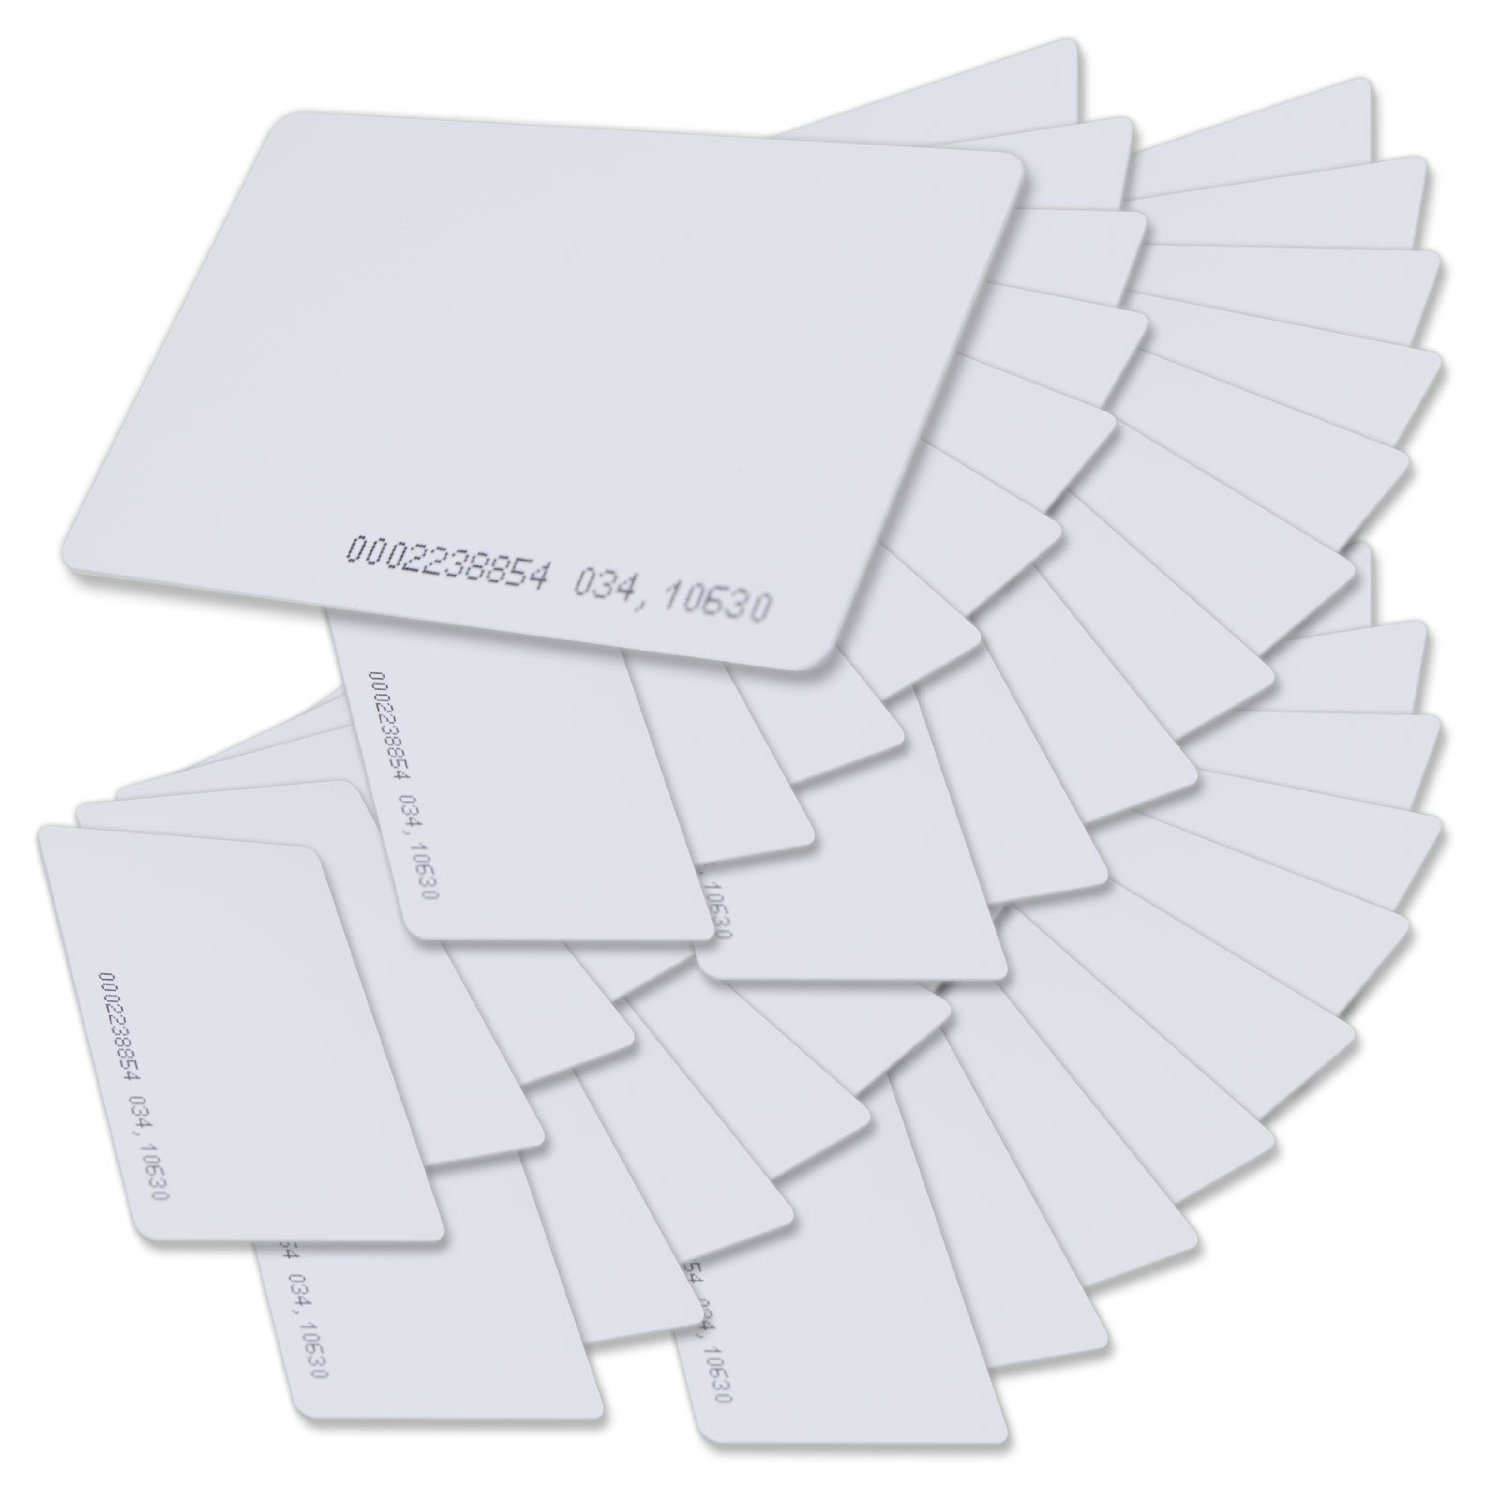 125khz em4100 door entry access blank white proximity rfid clamshell thick card thickness 1 9mm pack of 10 SainSmart Generic Contactless 125kHz EM4100 RFID Proximity ID Smart Entry Access Card (pack of 50)